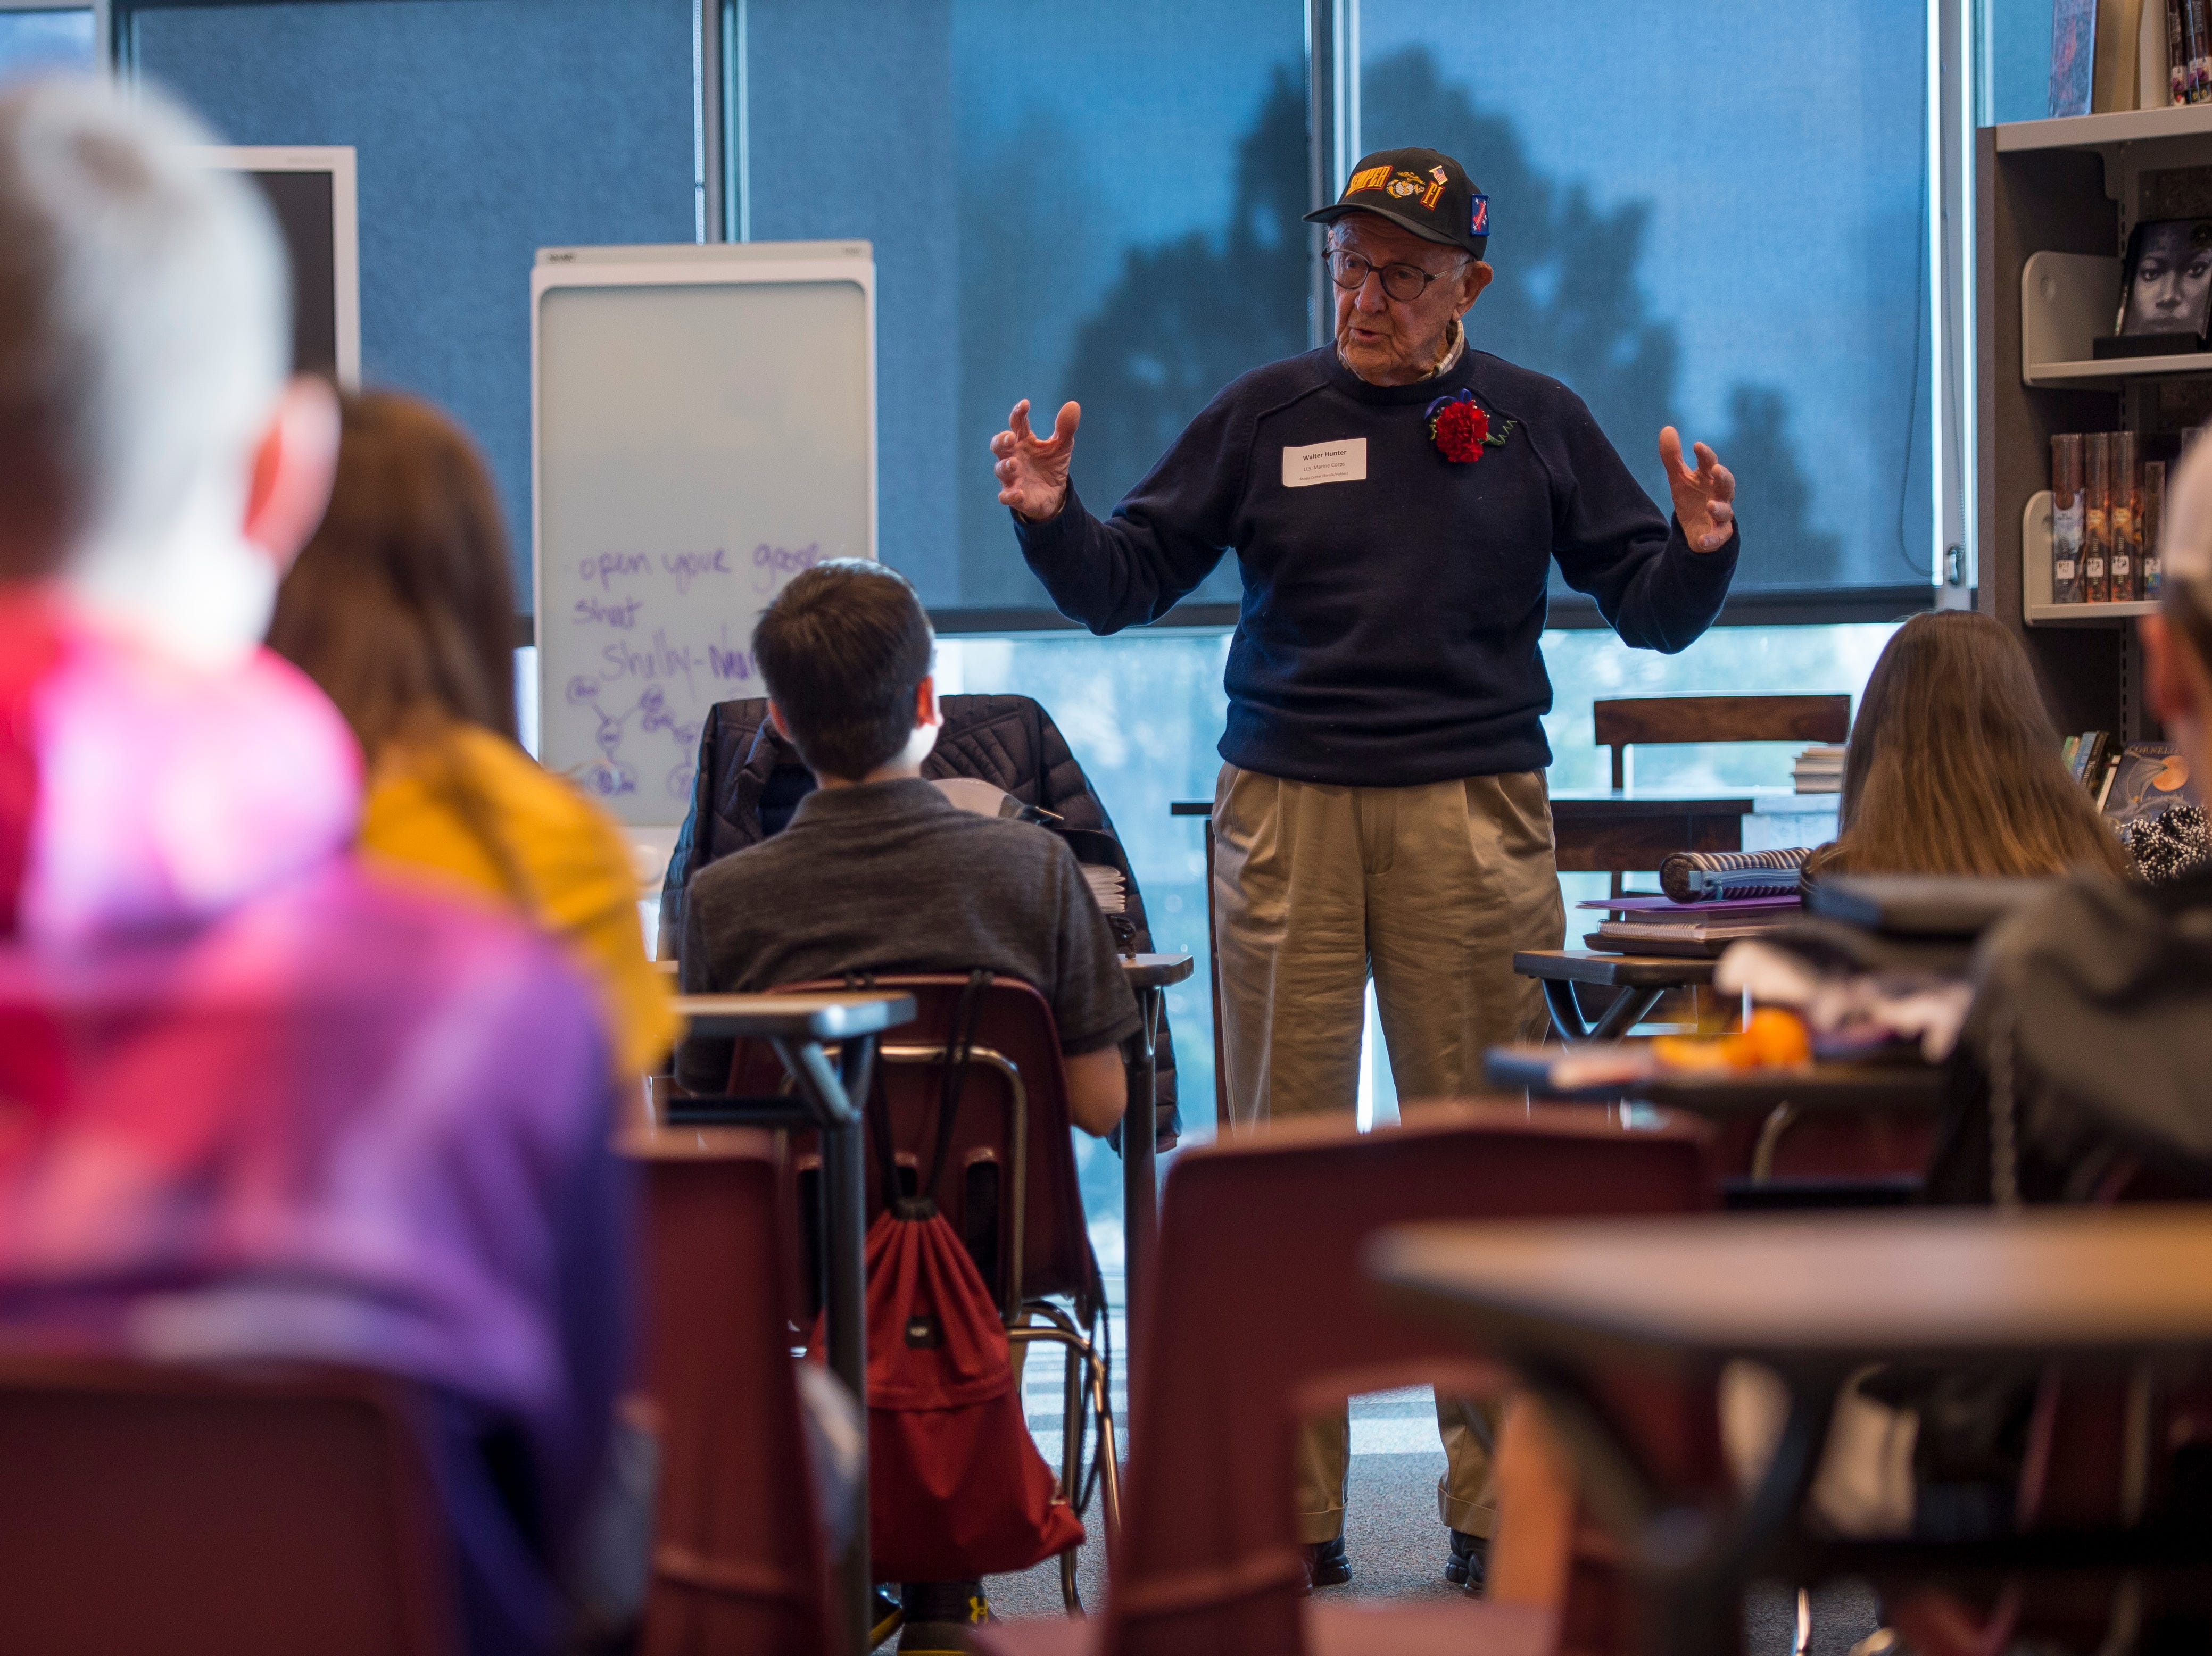 World War II Marine Corp veteran Walter Hunter speaks to a class at Preston Middle School's fourth annual Veterans Day Breakfast on Friday, Nov. 9, 2018, at Preston Middle School in Fort Collins, Colo.